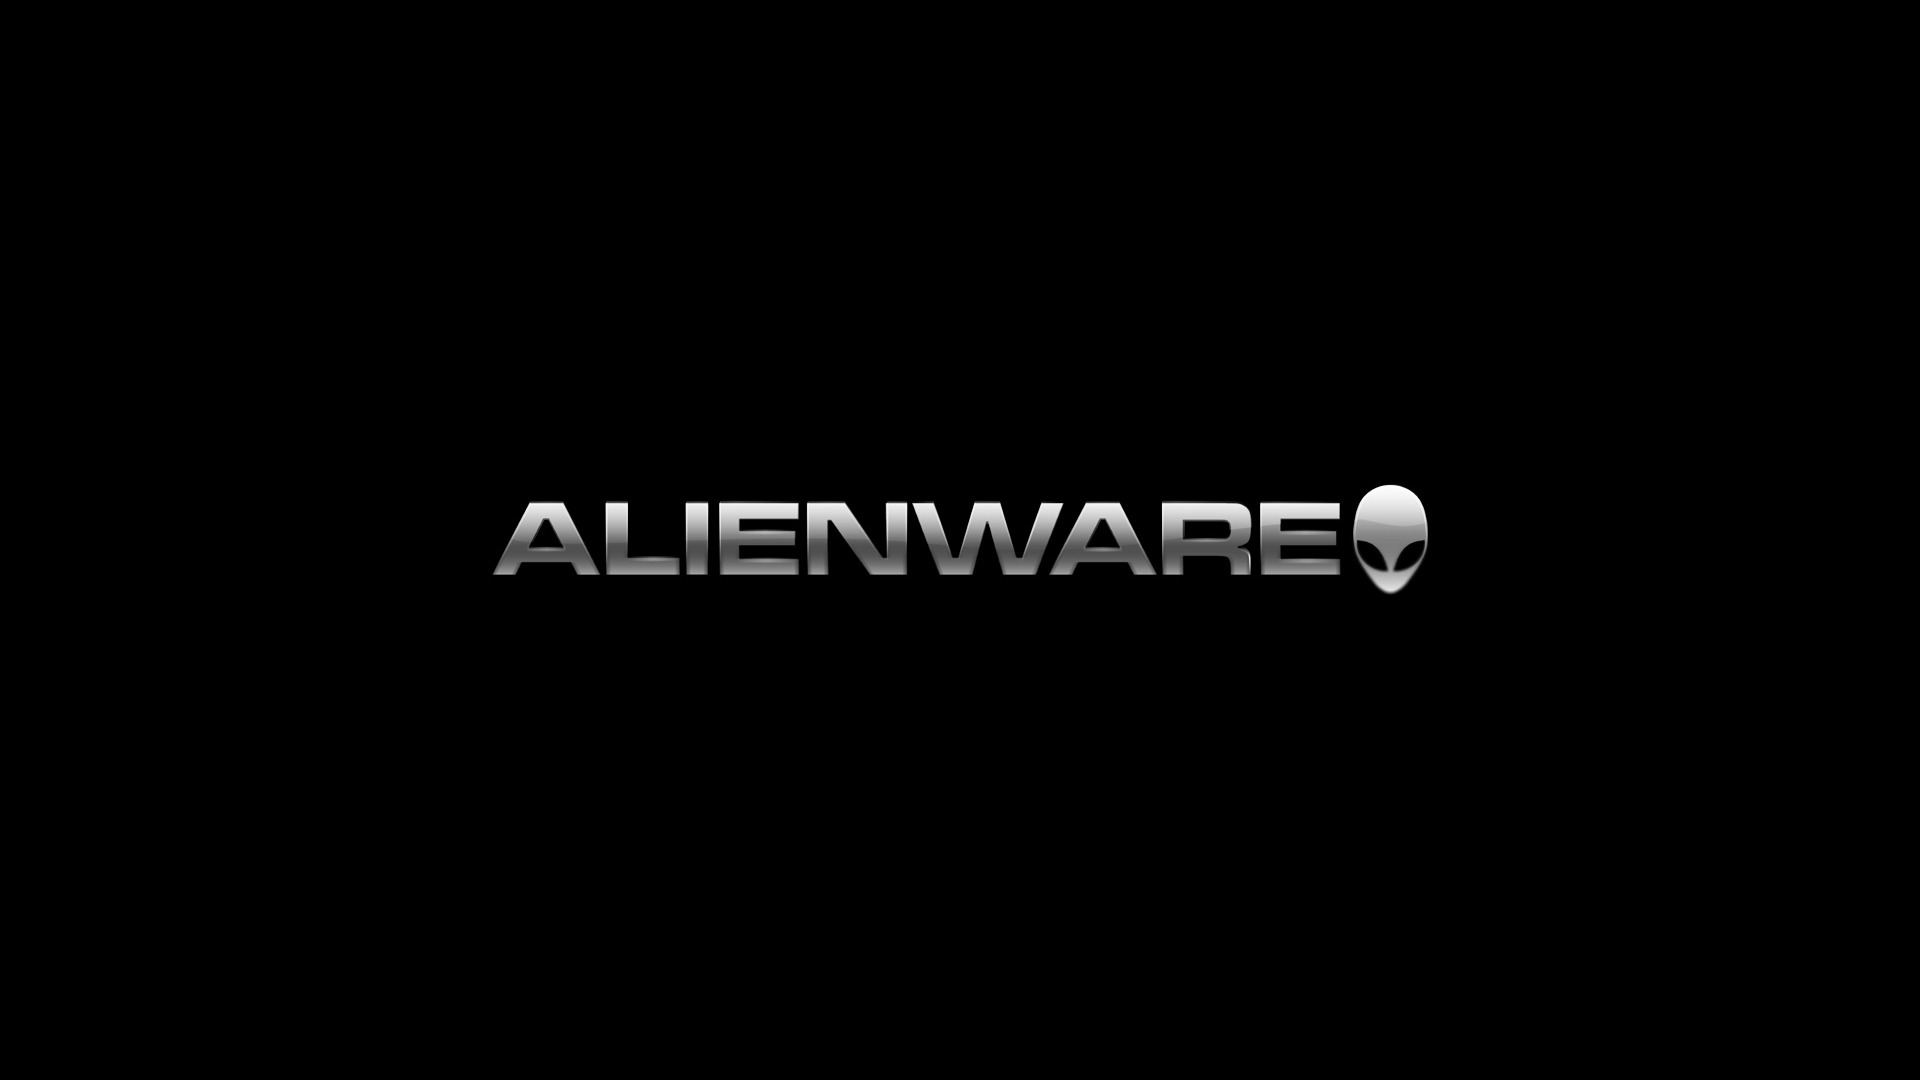 alienware, hd computer, 4k wallpapers, images, backgrounds, photos